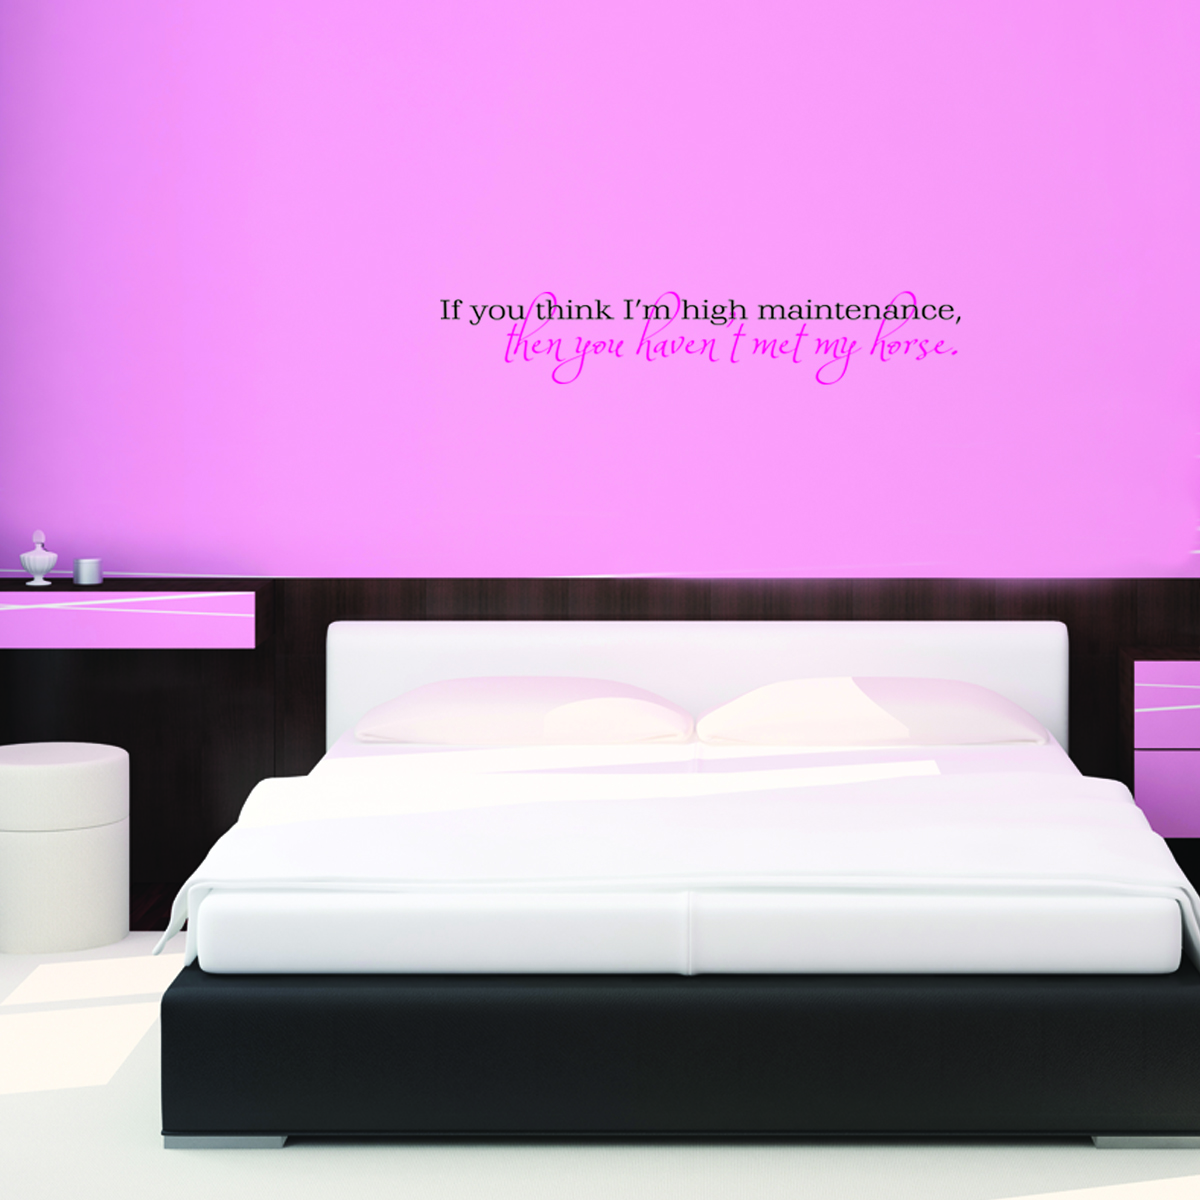 You Havent Met My Horse Wall Quotes Decal WallQuotescom - Wall decals above bed